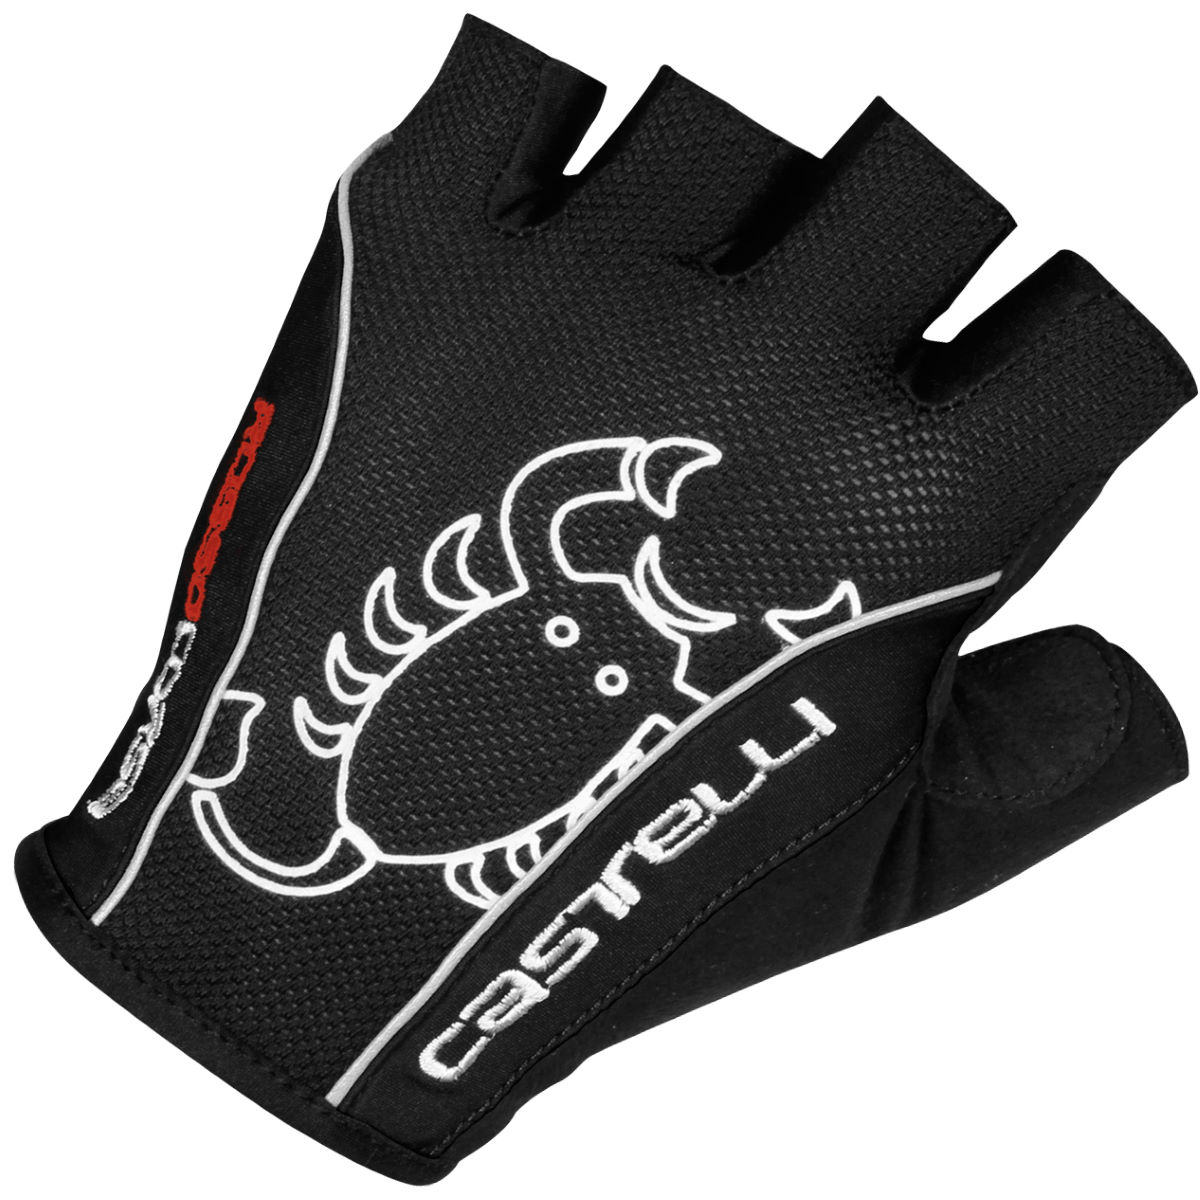 Castelli Rosso Corsa Classic Gloves - Large Black